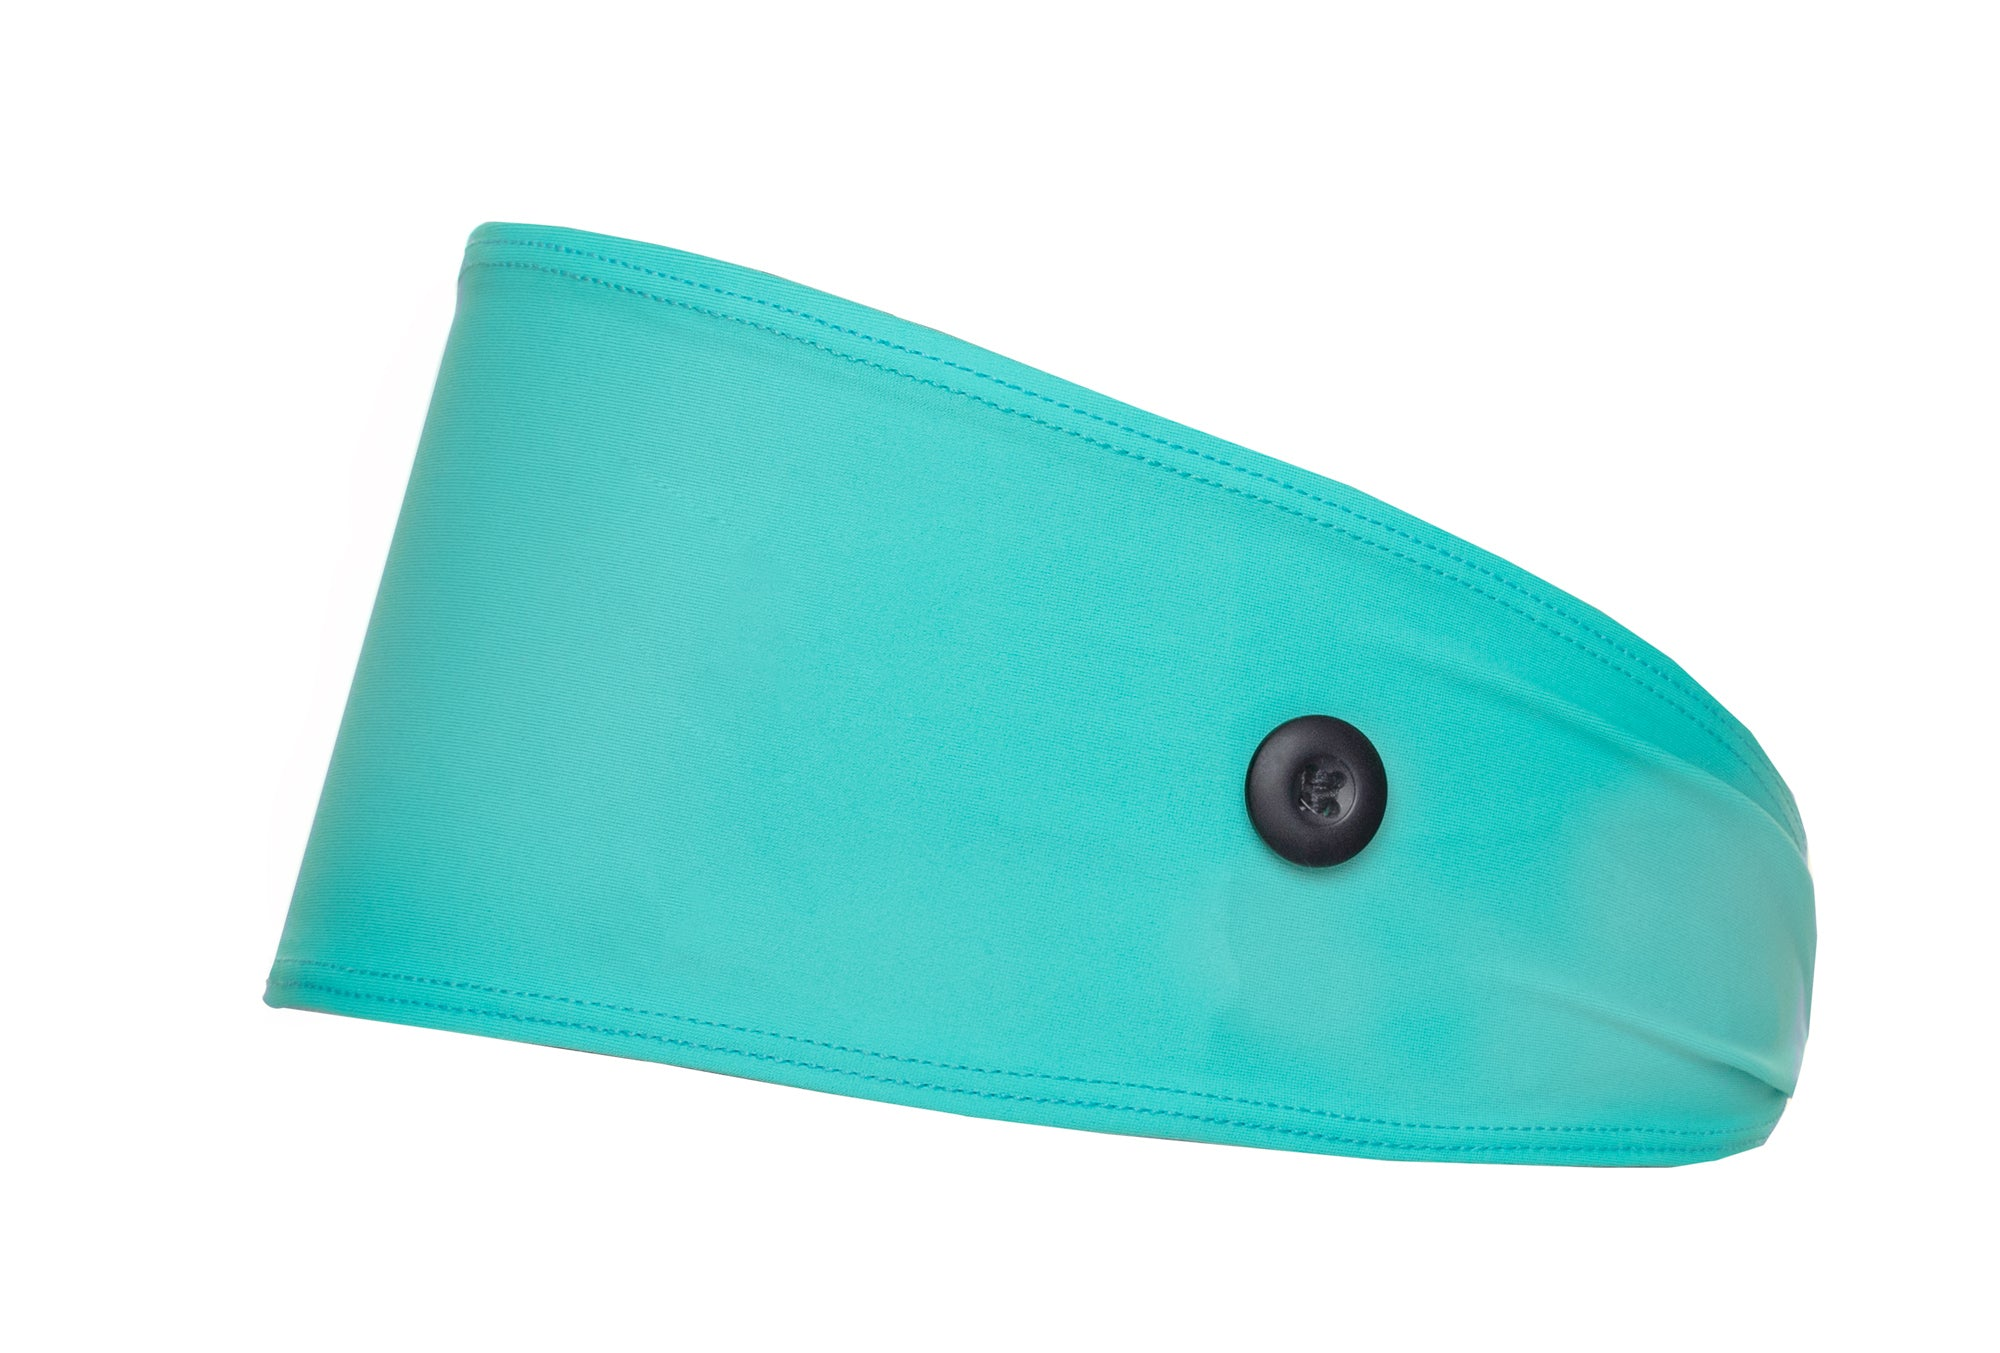 Turquoise Headband with Buttons for Masks - Ear Savers